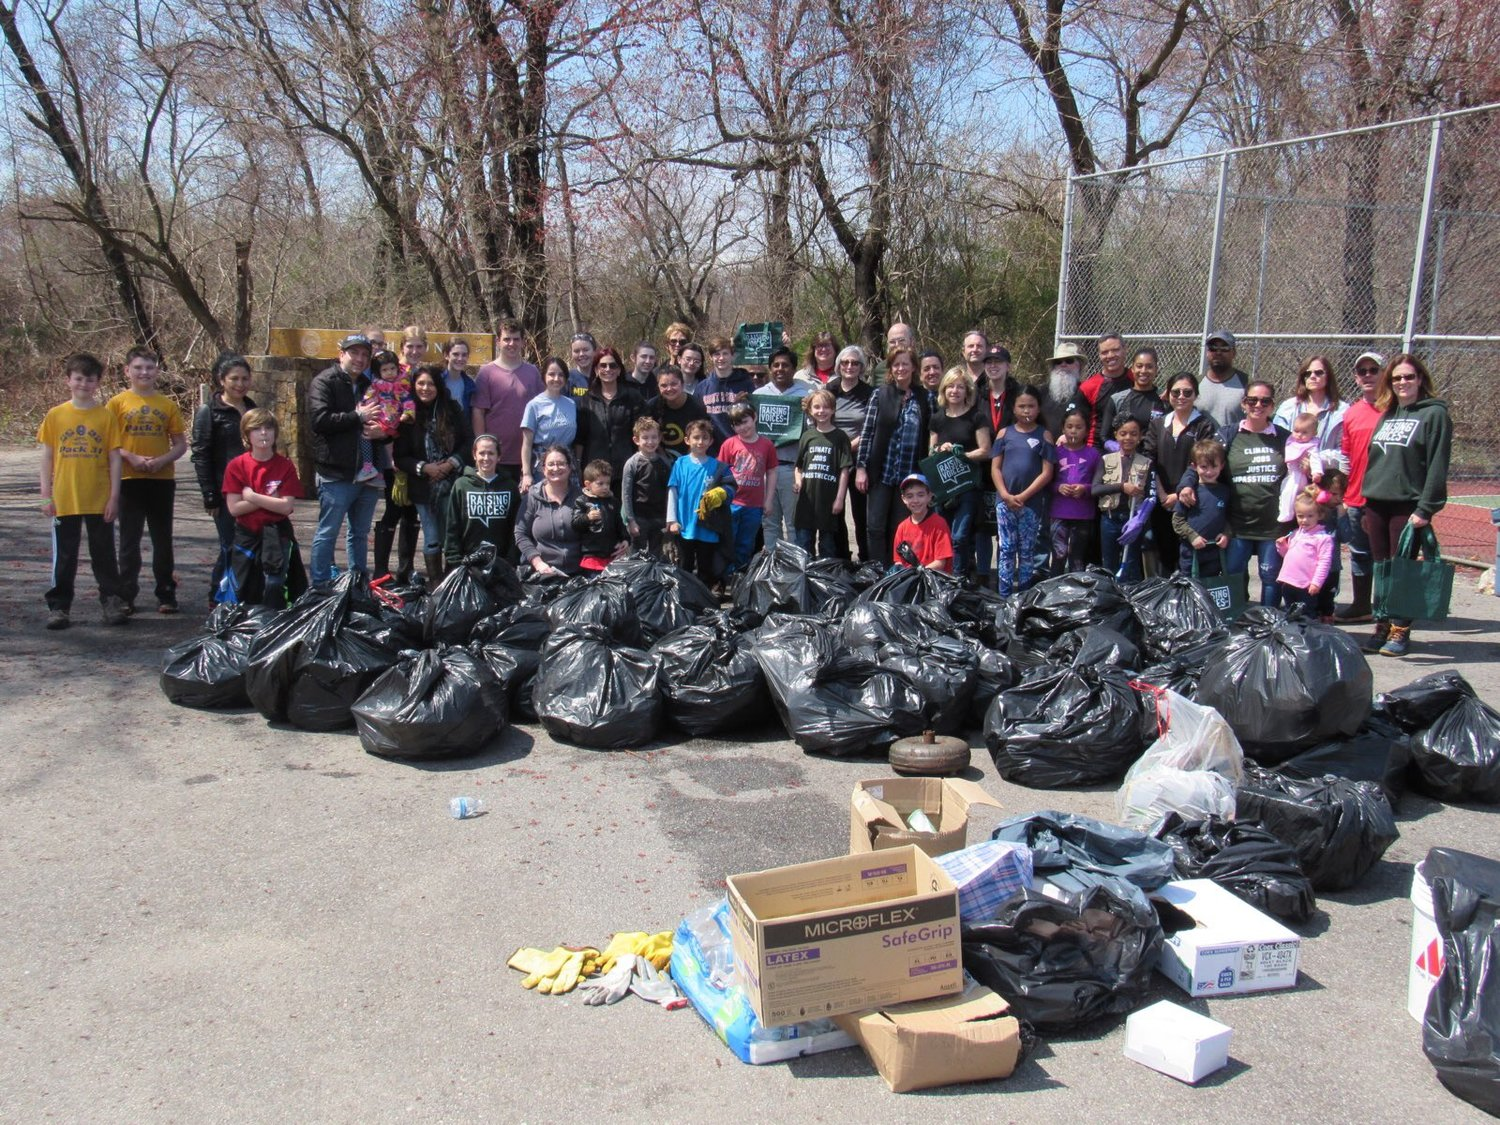 Dozens of community members collected trash at Smith Pond and Morgan Days Park in Rockville Centre on April 13.